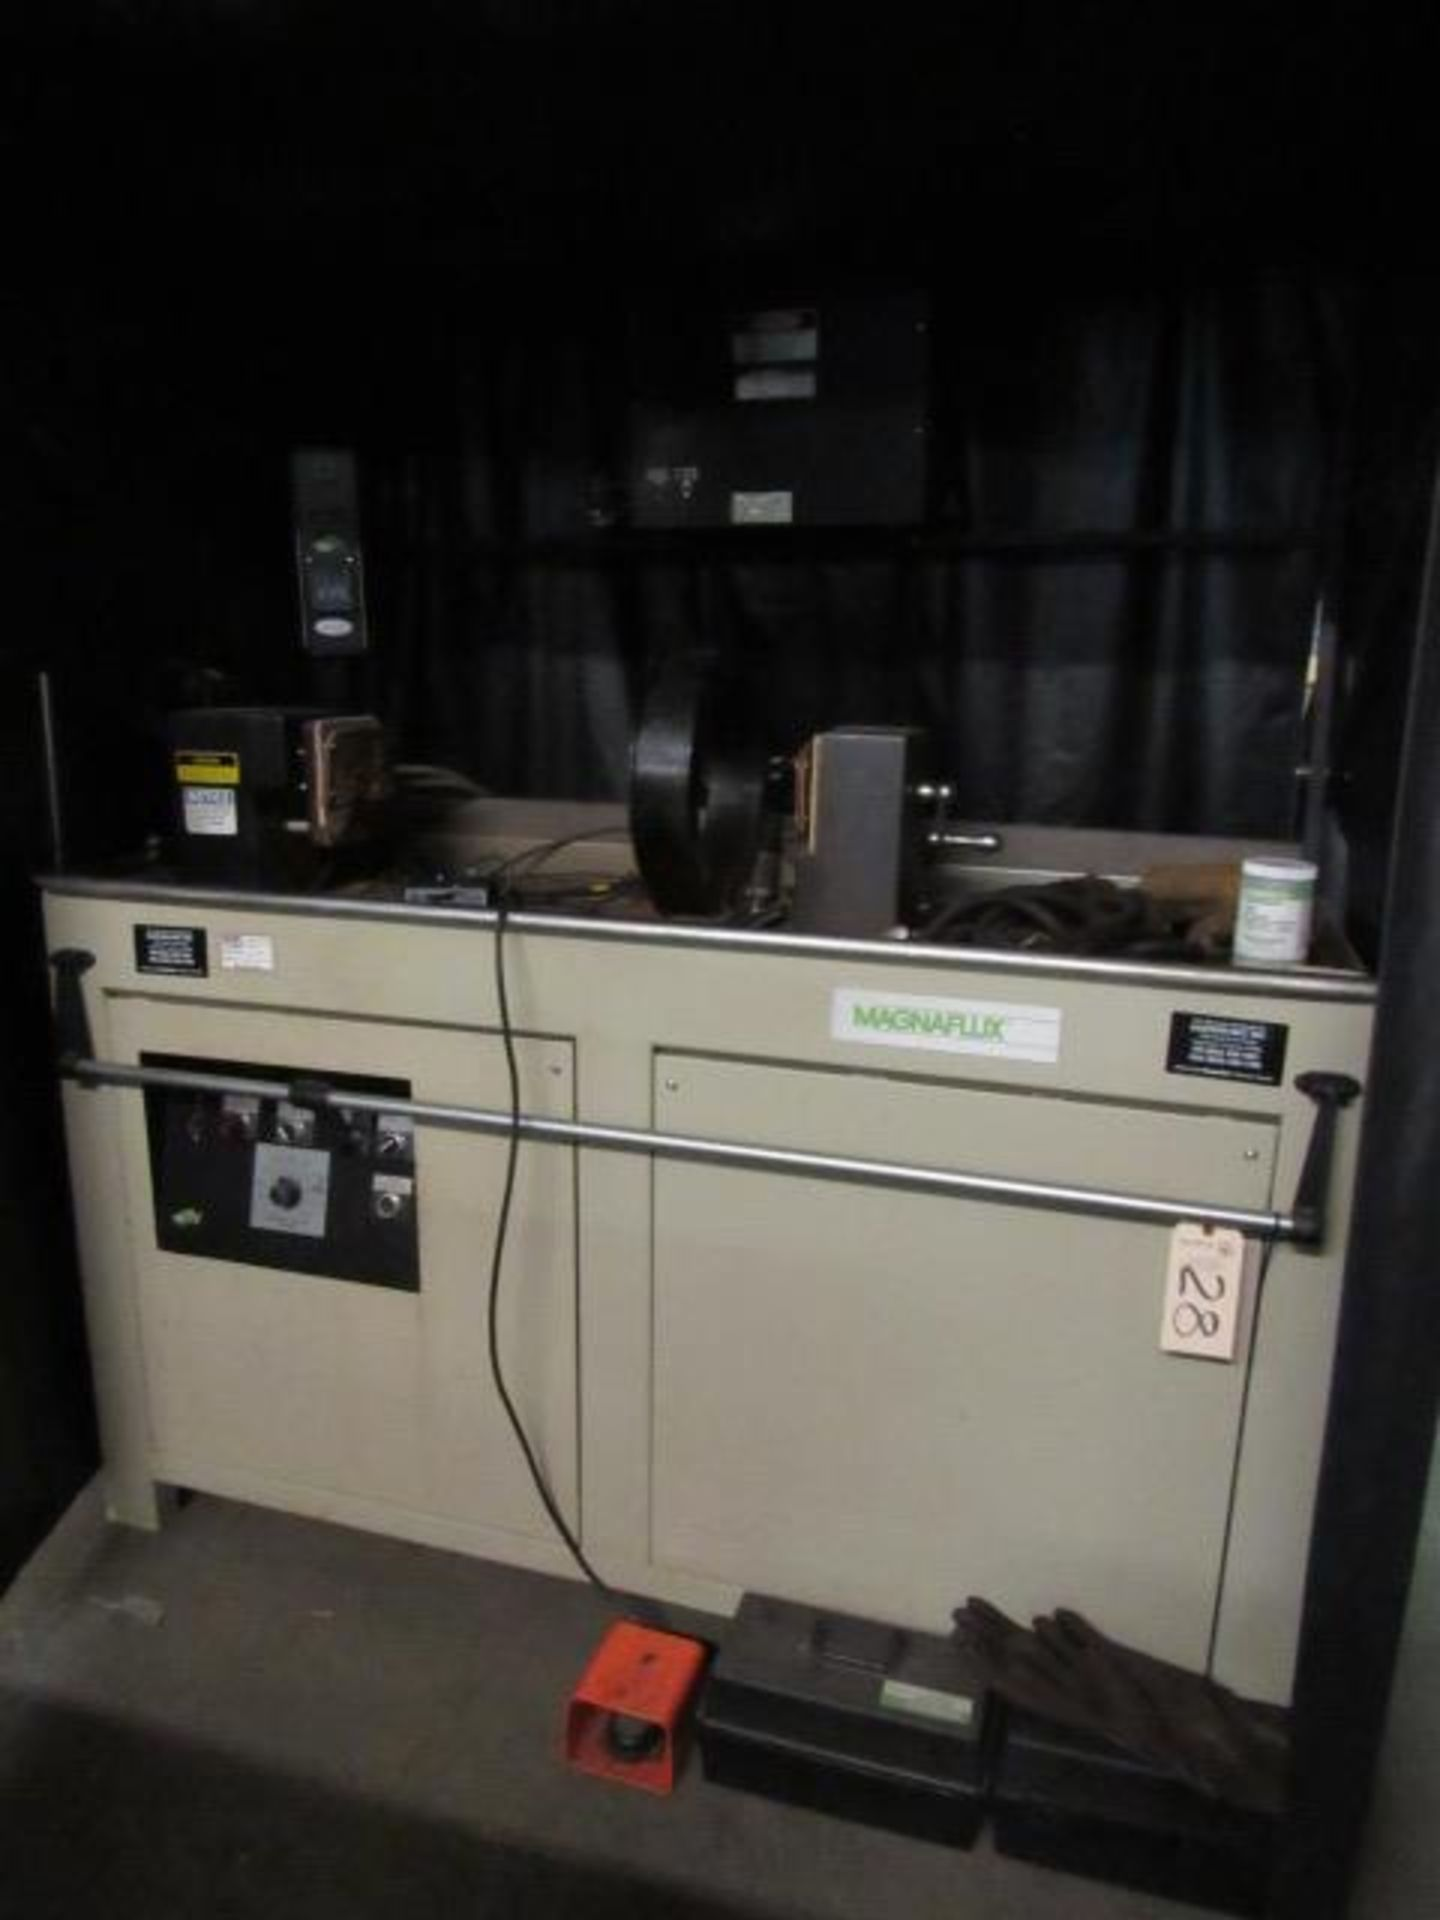 Lot 28 - Magnuflux Model AD-945 Magnetic Particle Inspection Machine